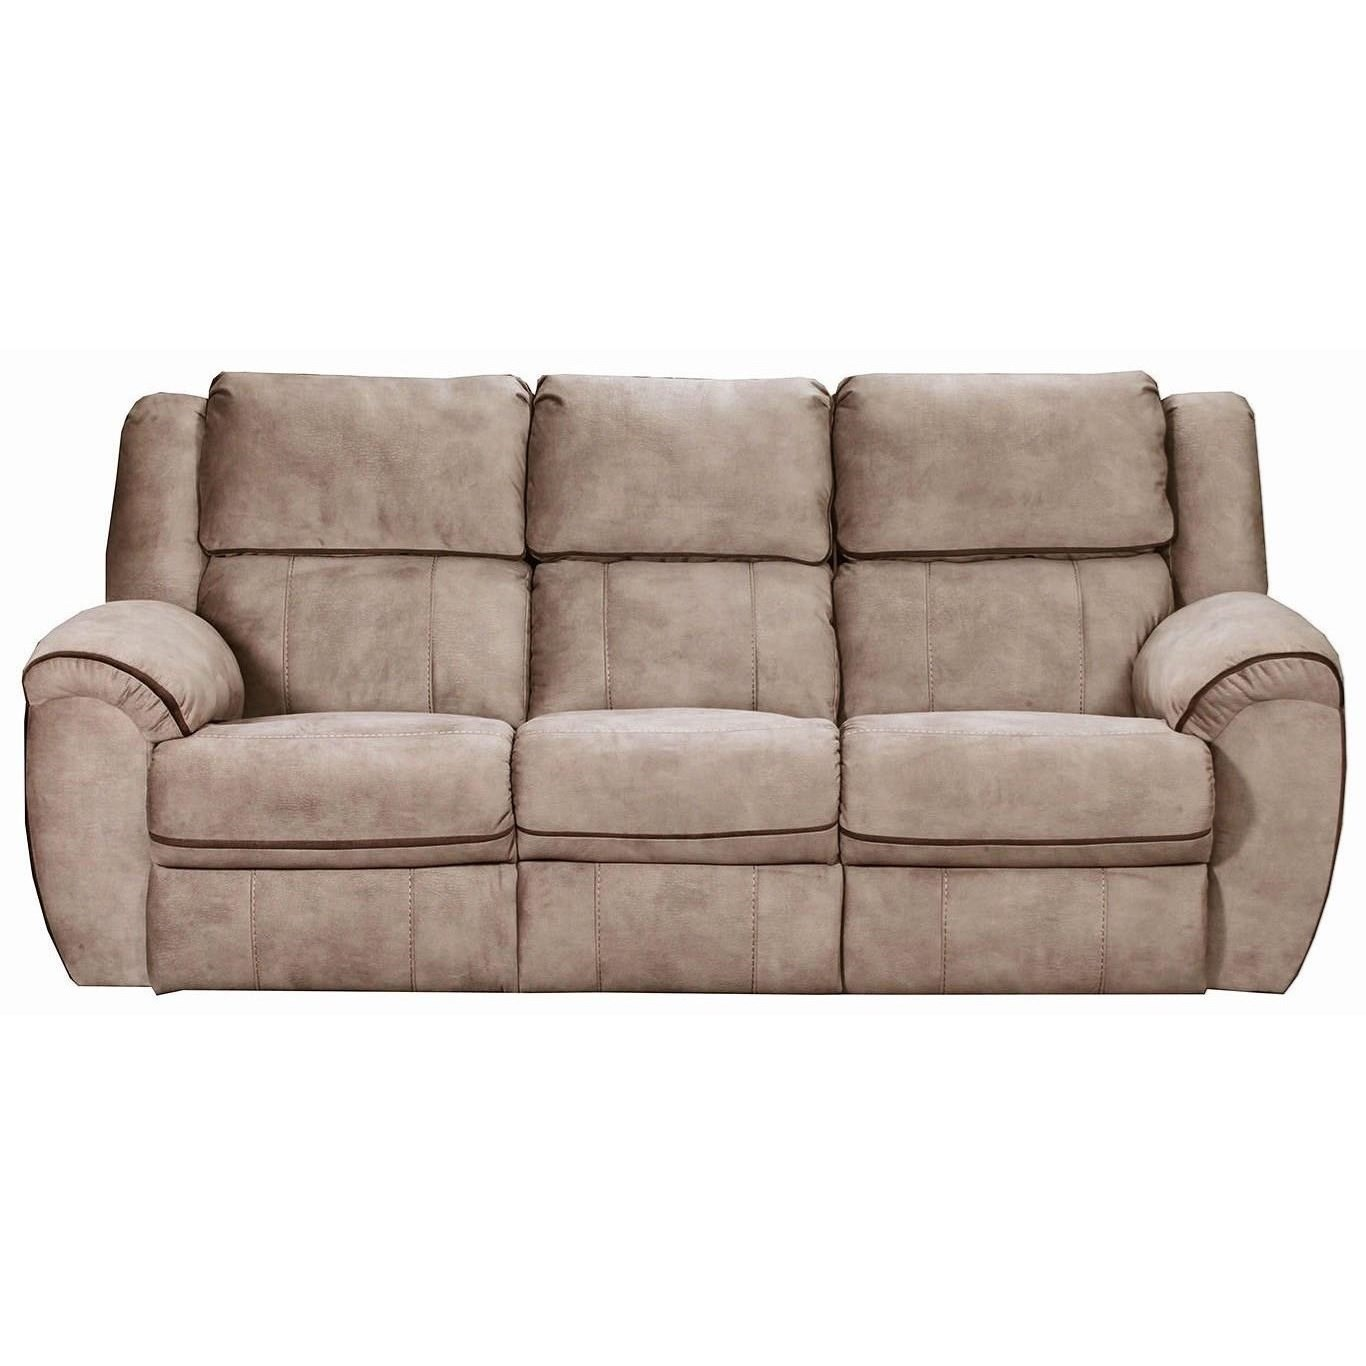 50436BR Reclining Sofa by United Furniture Industries at Value City Furniture